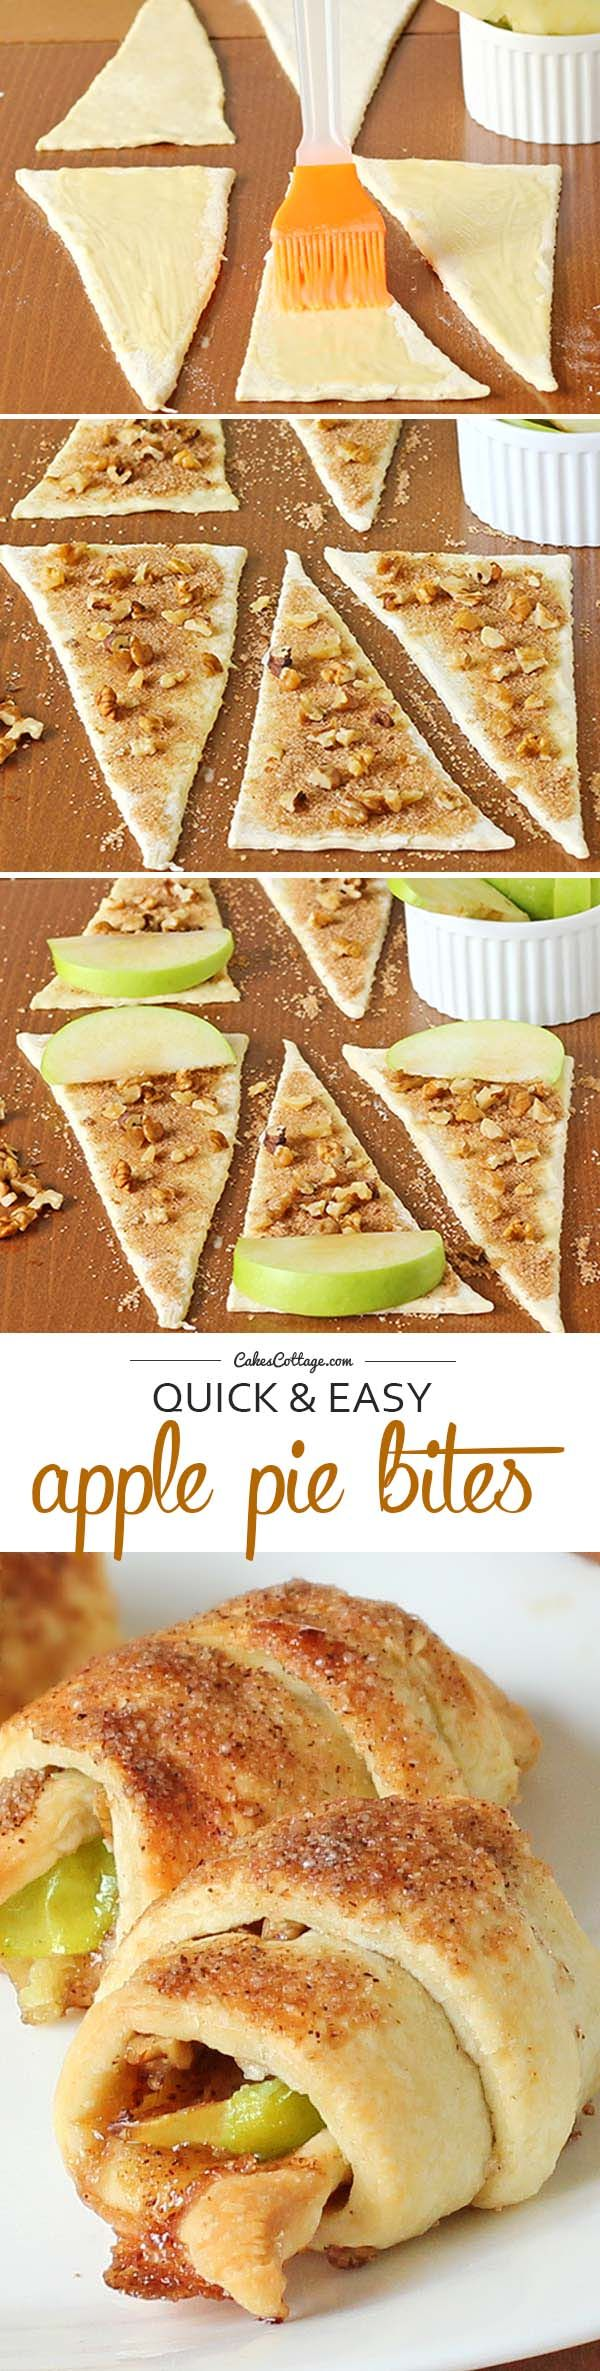 Try this Apple Pie Bites made with crescent rolls, apples & pecans.